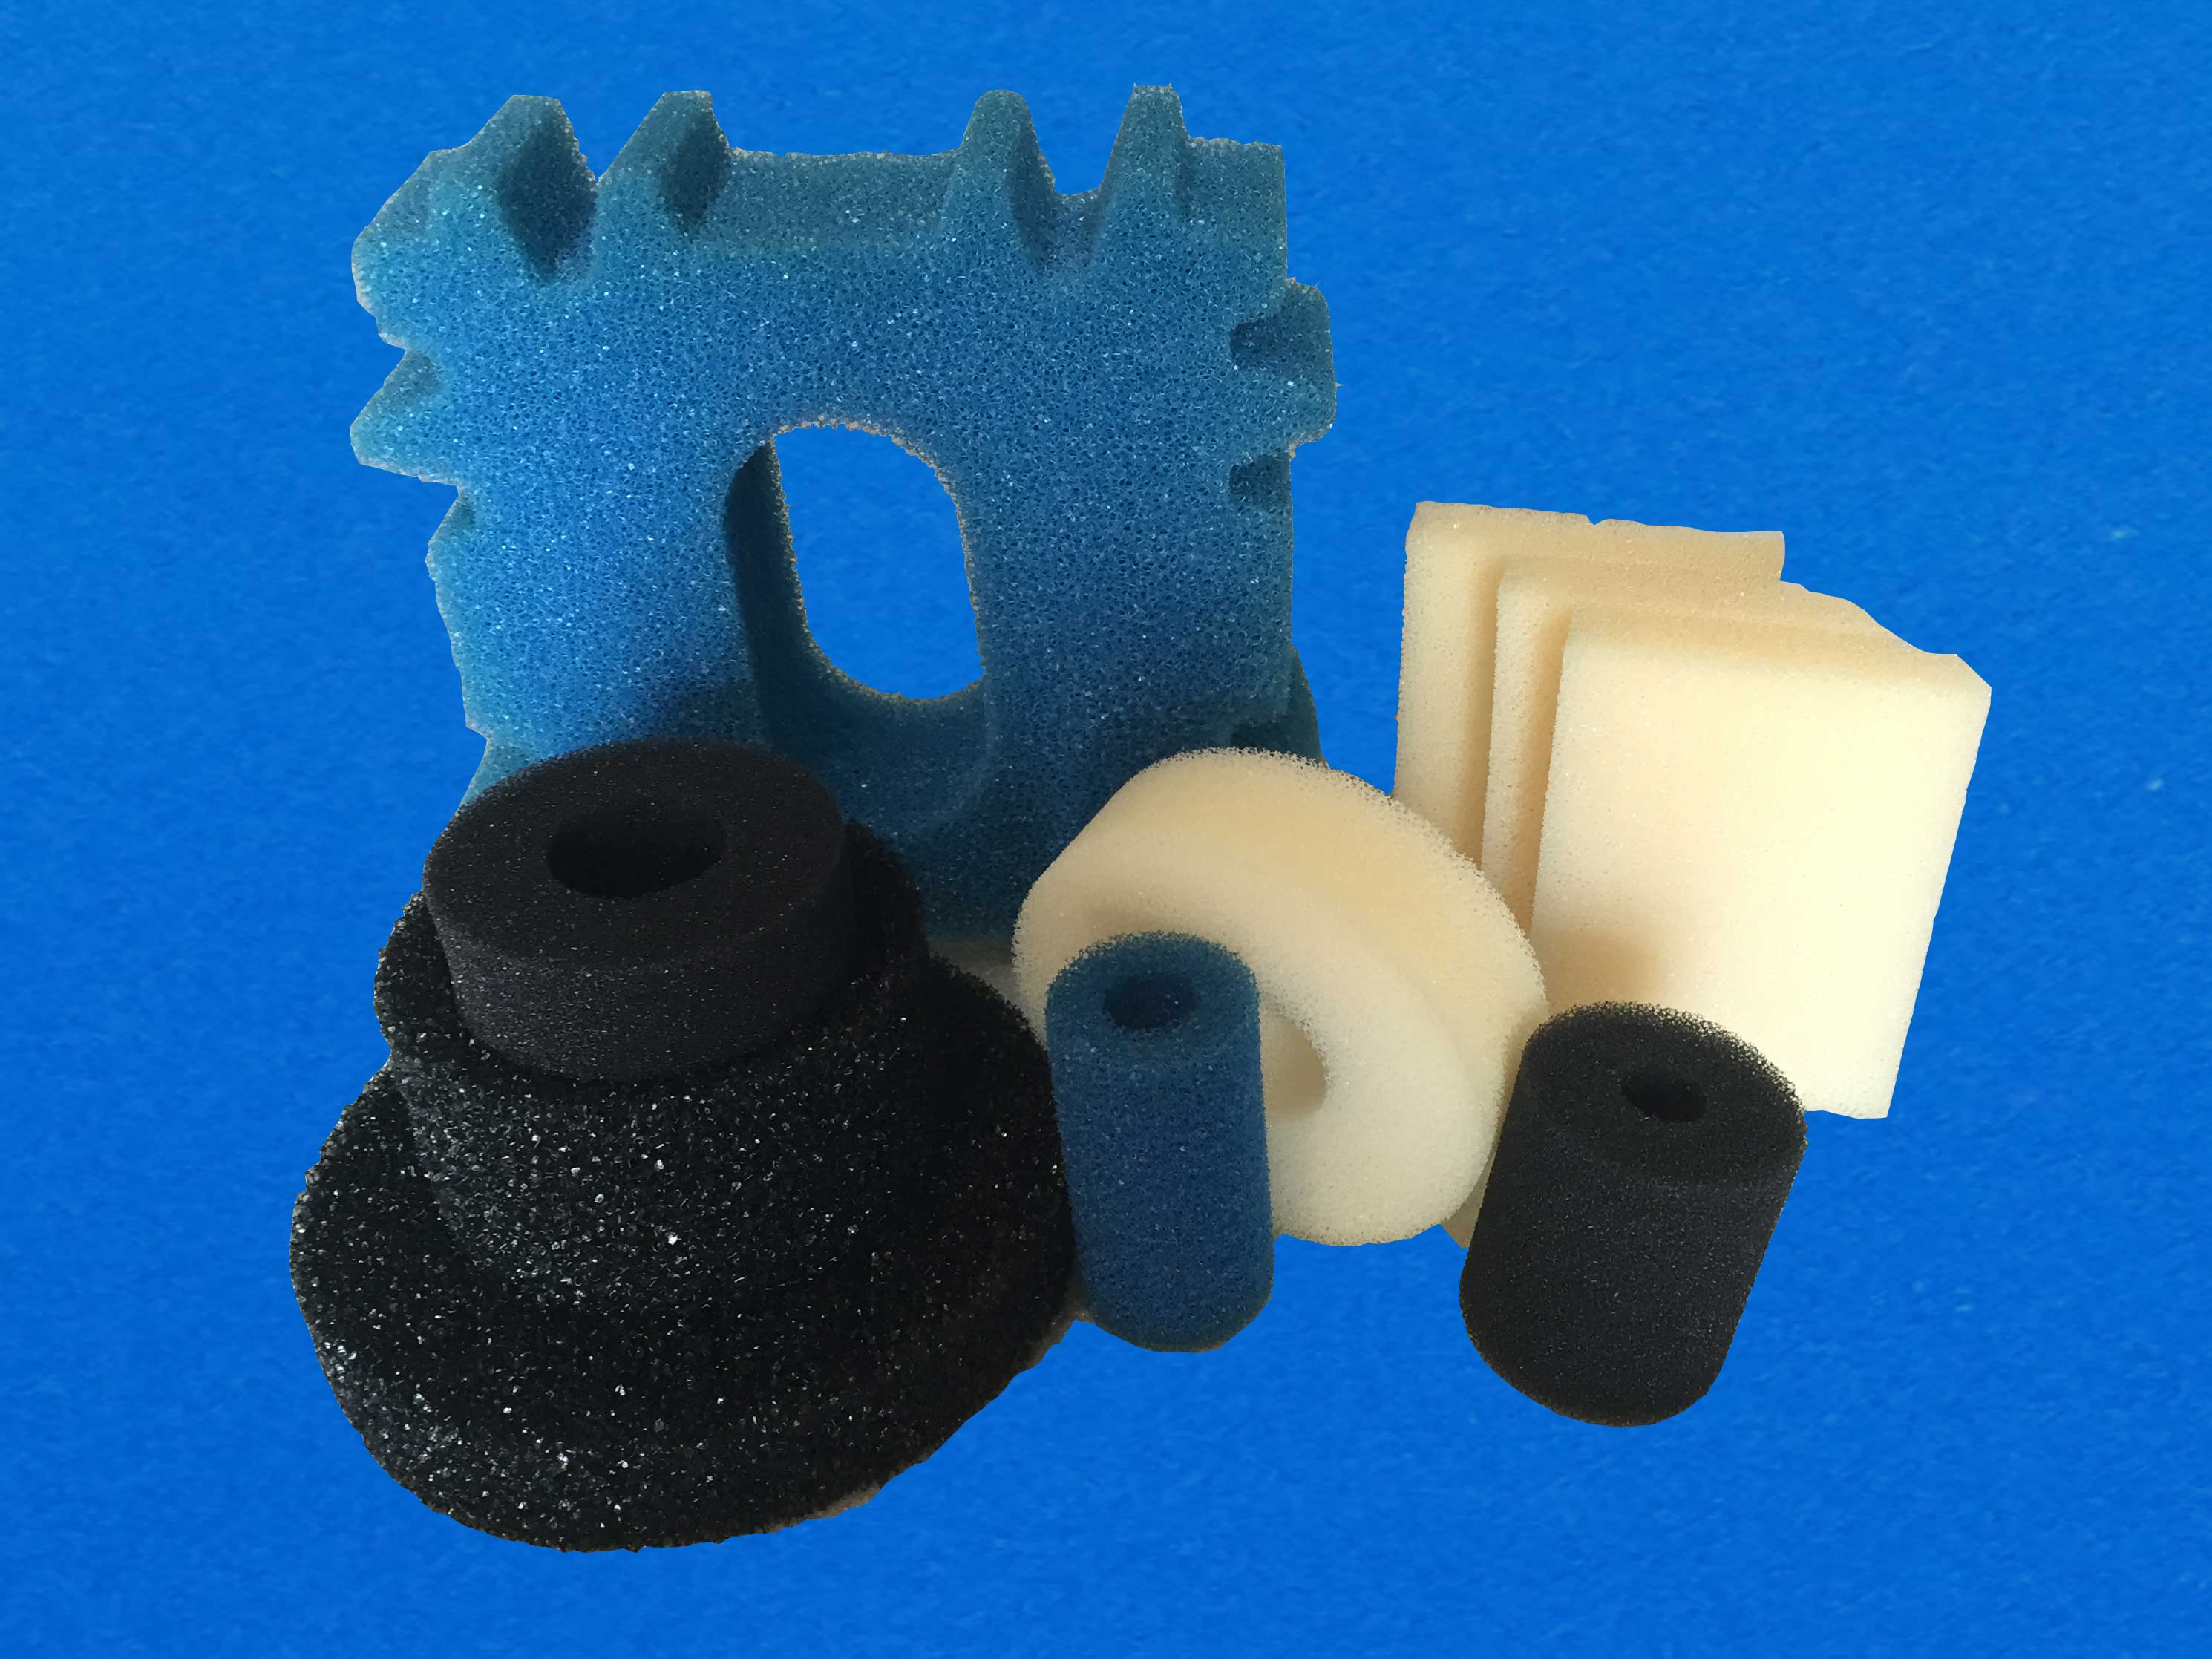 Aquatic Filtration Products